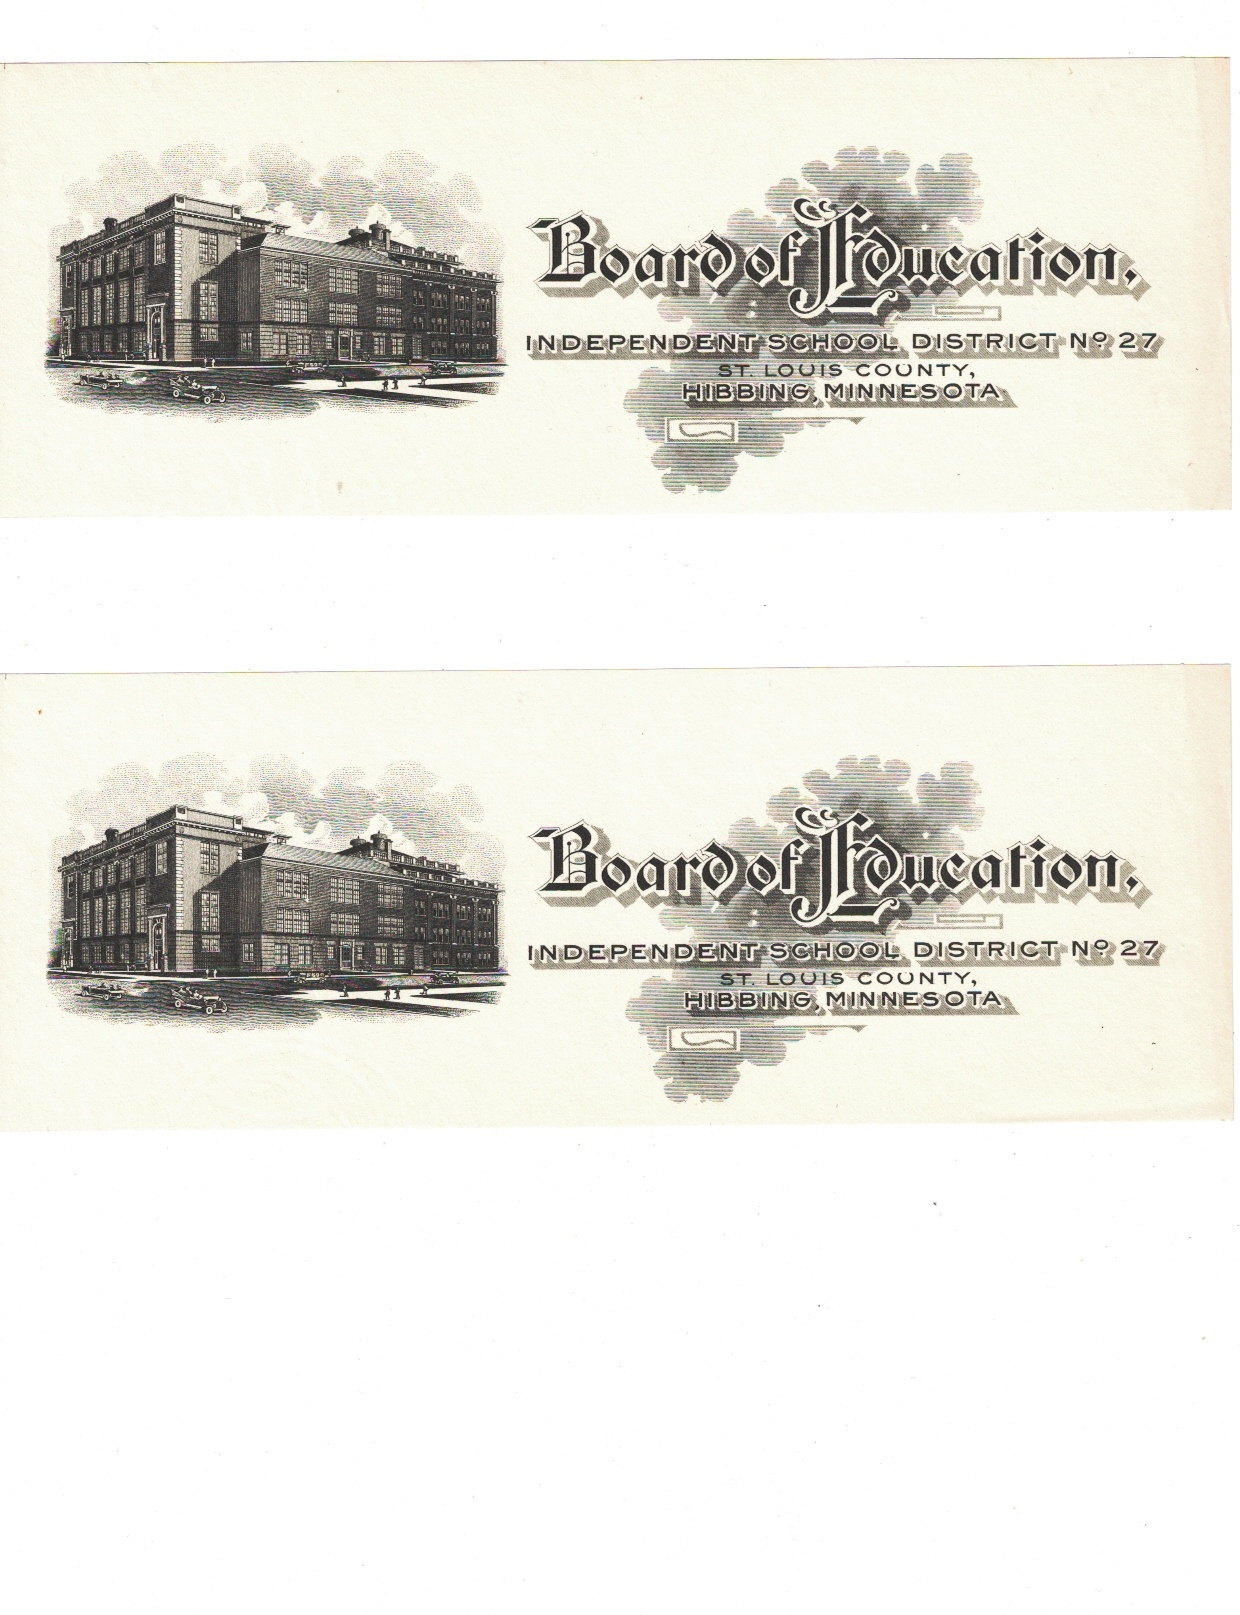 Image for Hibbing, Minnesota Board of Education: Independent School District No. 27 [two copies]